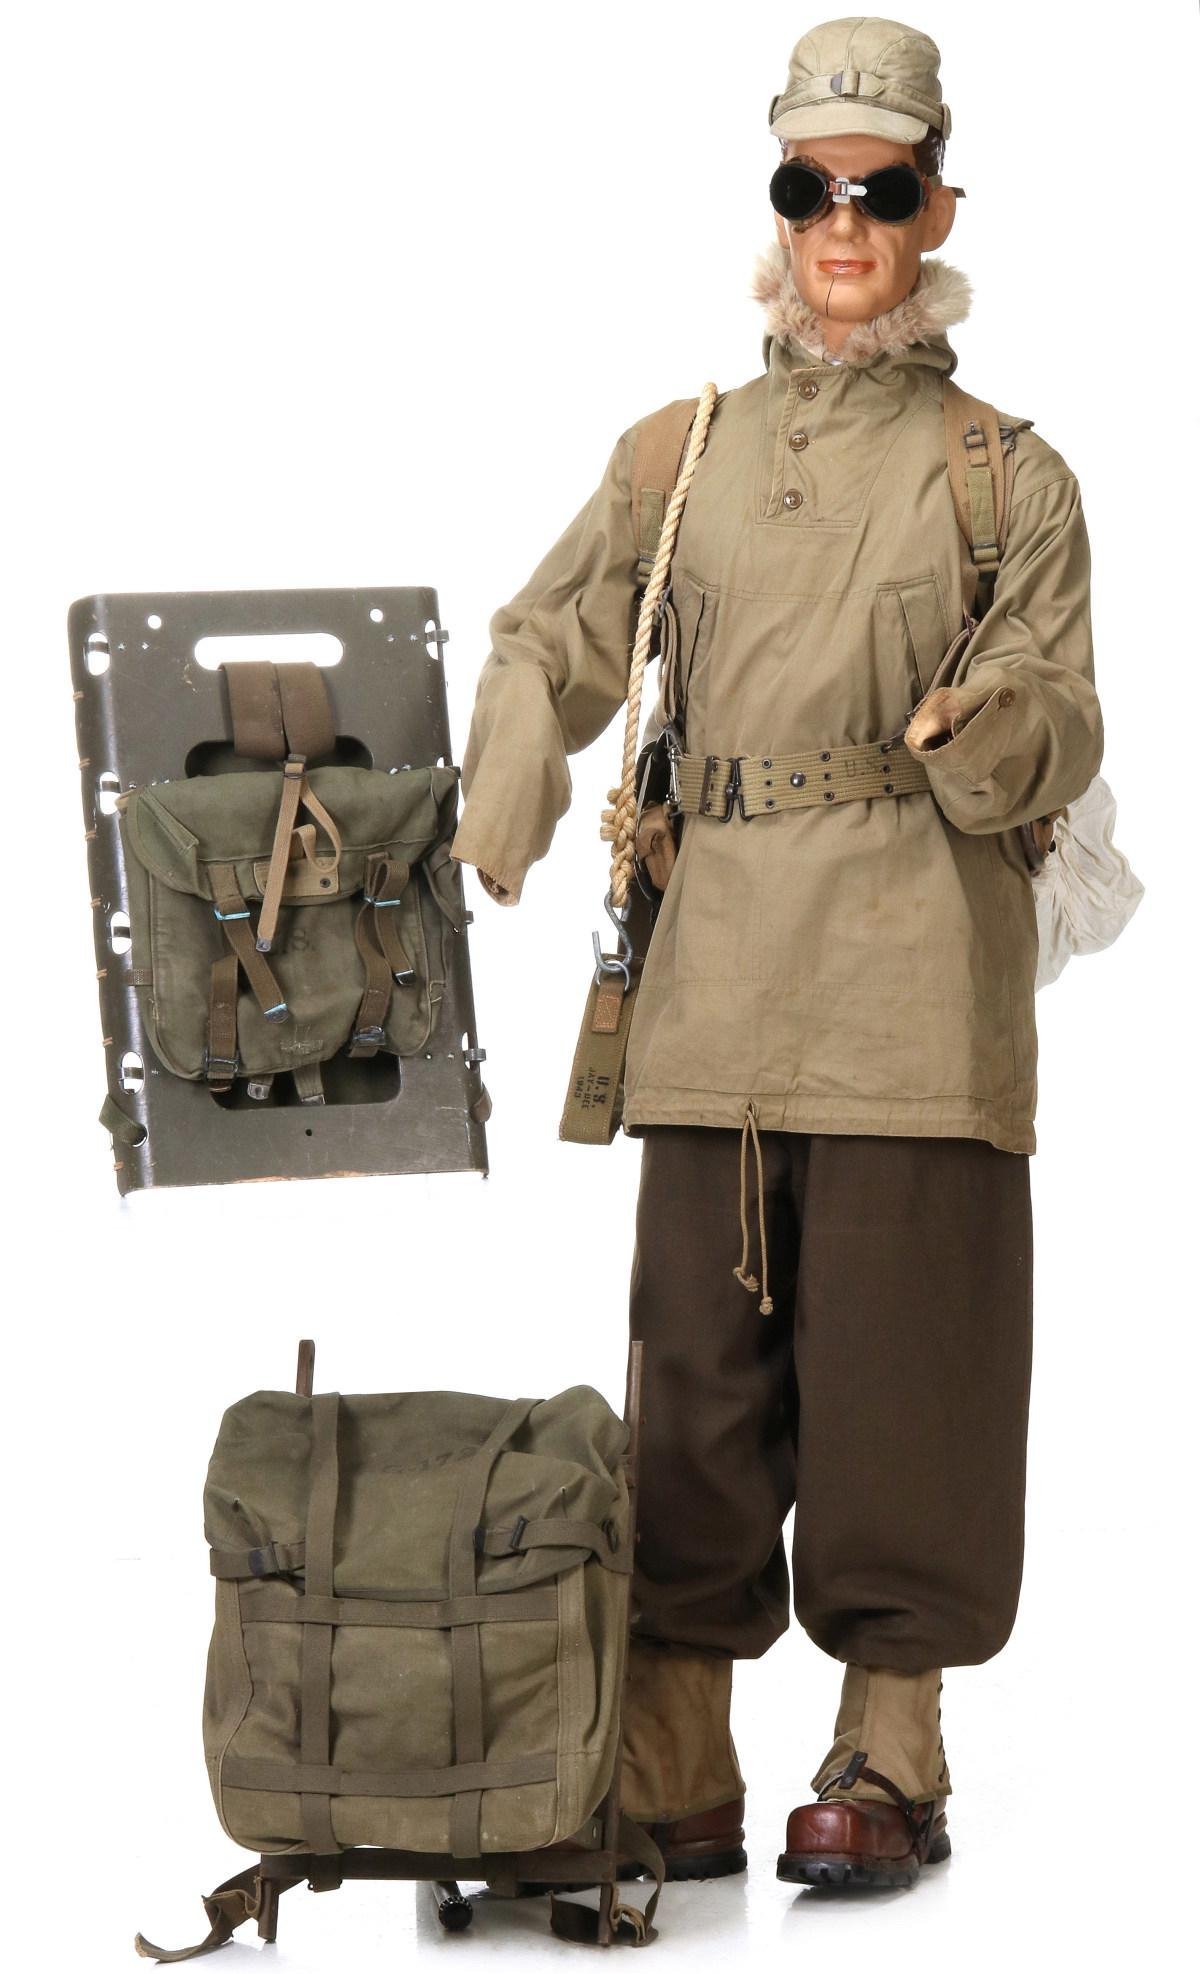 GEAR AND UNIFORM DEPICTION OF US 10TH MOUNTAIN DIVISION